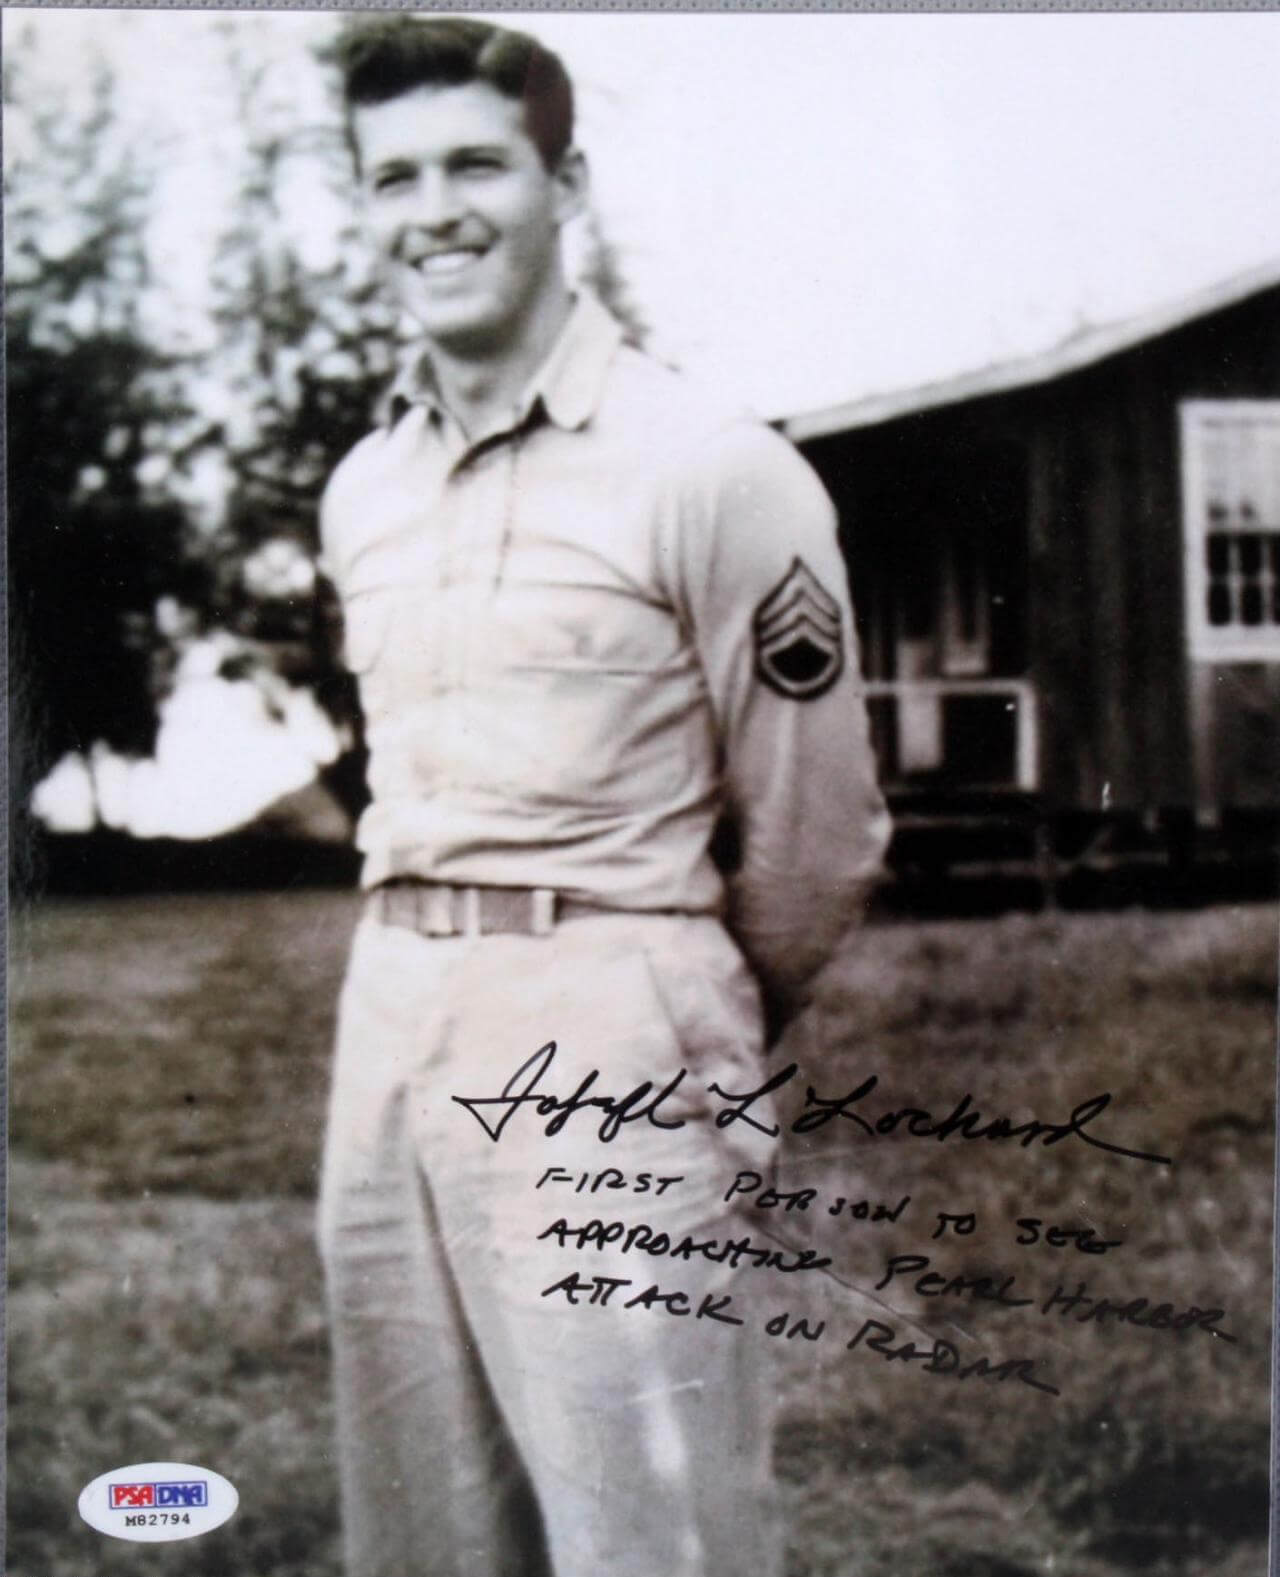 """WWII """"Pearl Harbor"""" - Joseph Lochard Signed, Inscribed 8x10 Photo - (First Person to See Approaching Pearl Harbor Attack on Radar - Very Rare) (PSA/DNA COA)"""